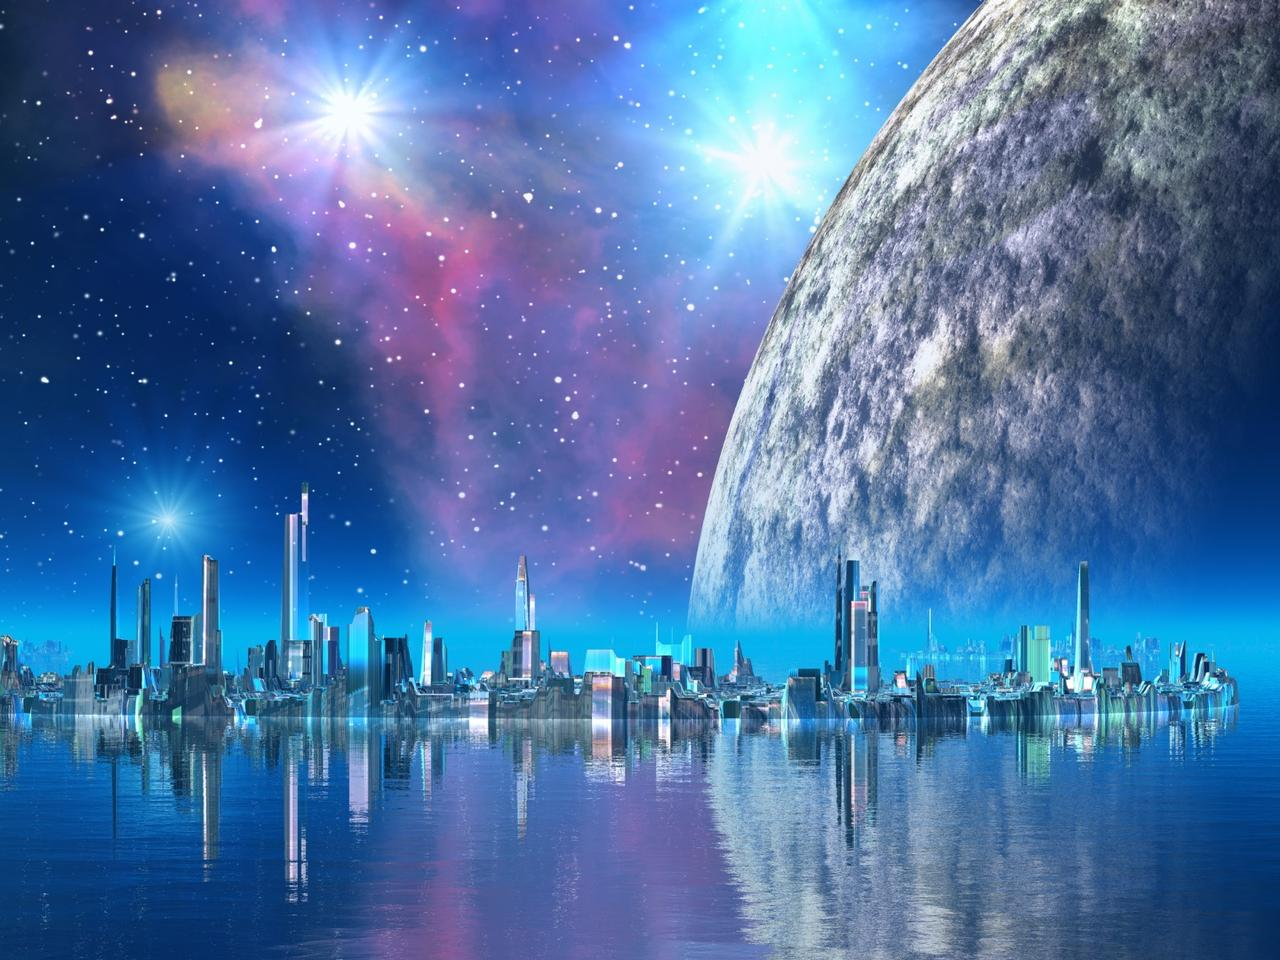 First contact with extraterrestrial civilizations has long fascinated scientists, philosophers, and writers